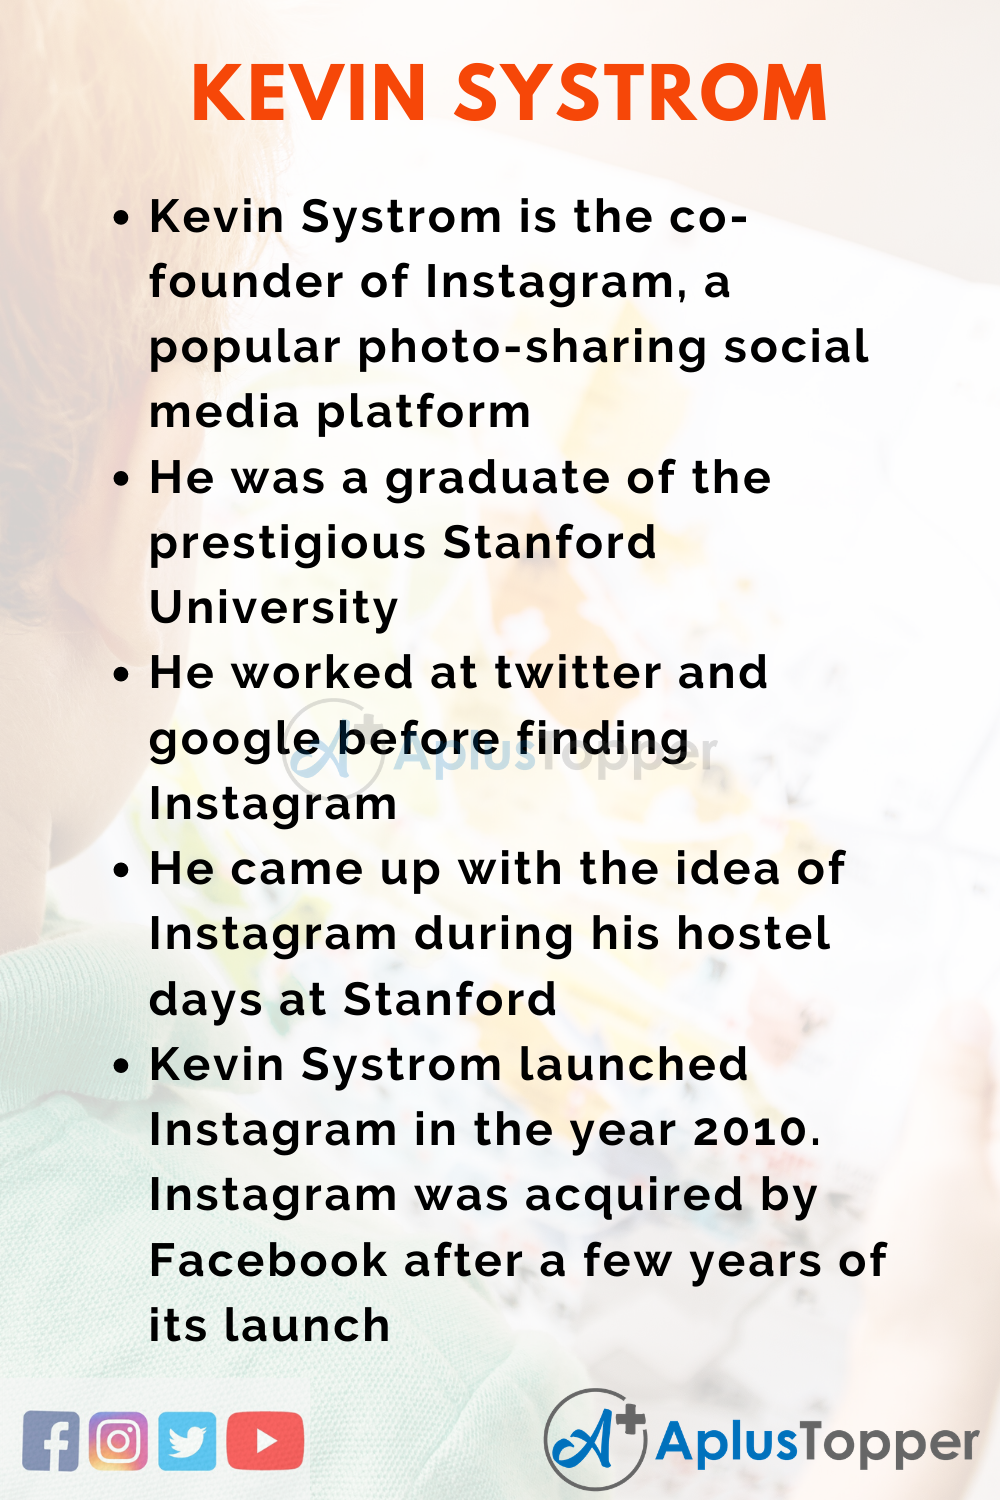 10 Lines on Kevin Systrom for Kids